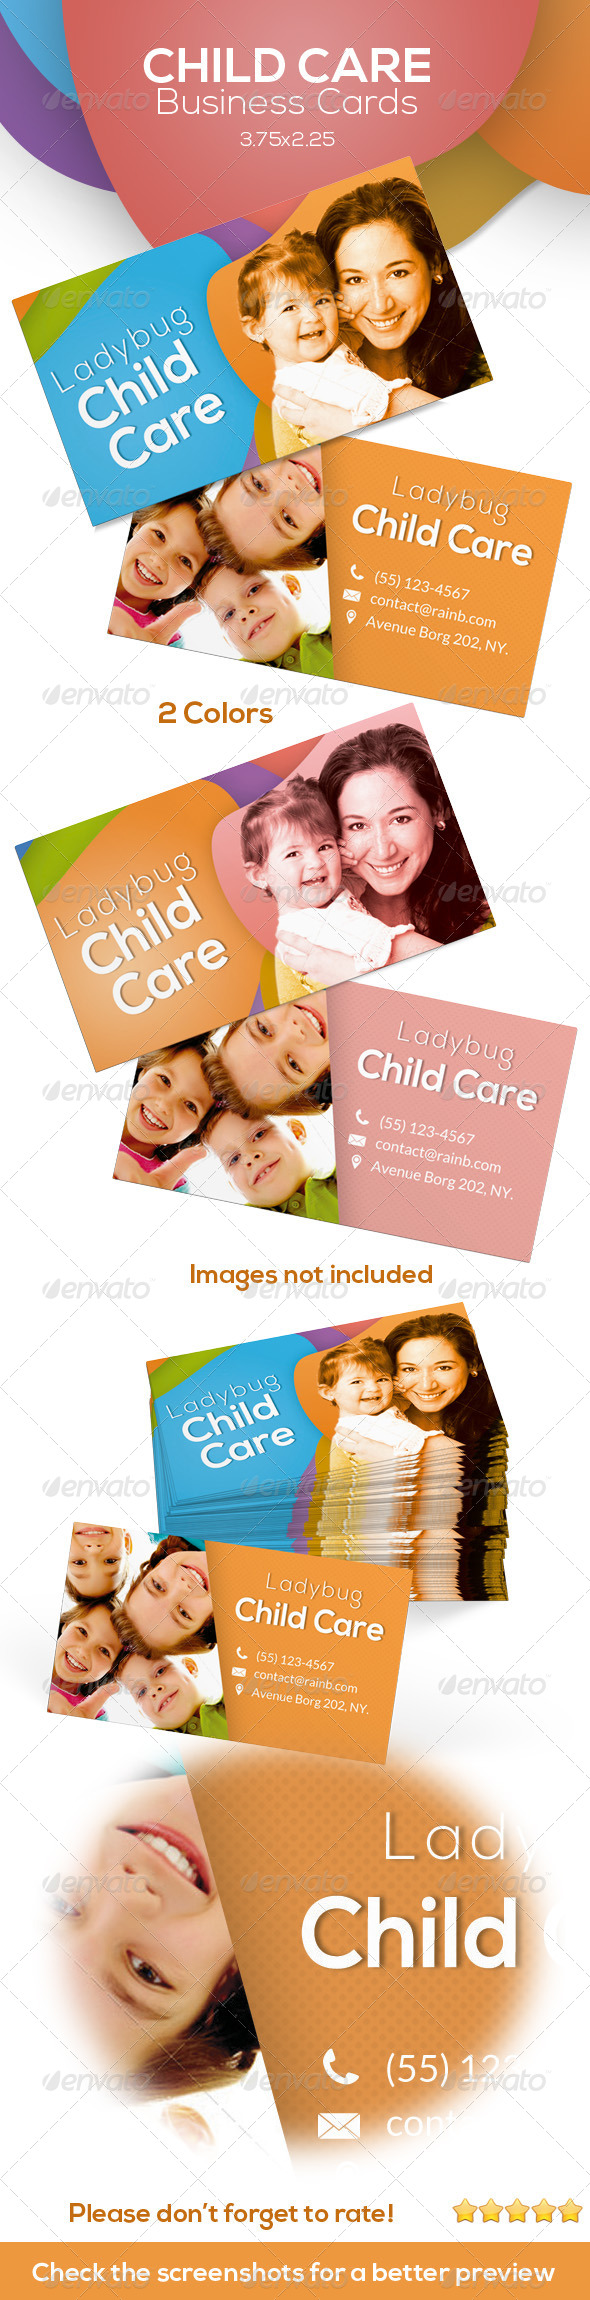 Child Care Business Cards by ingridk | GraphicRiver